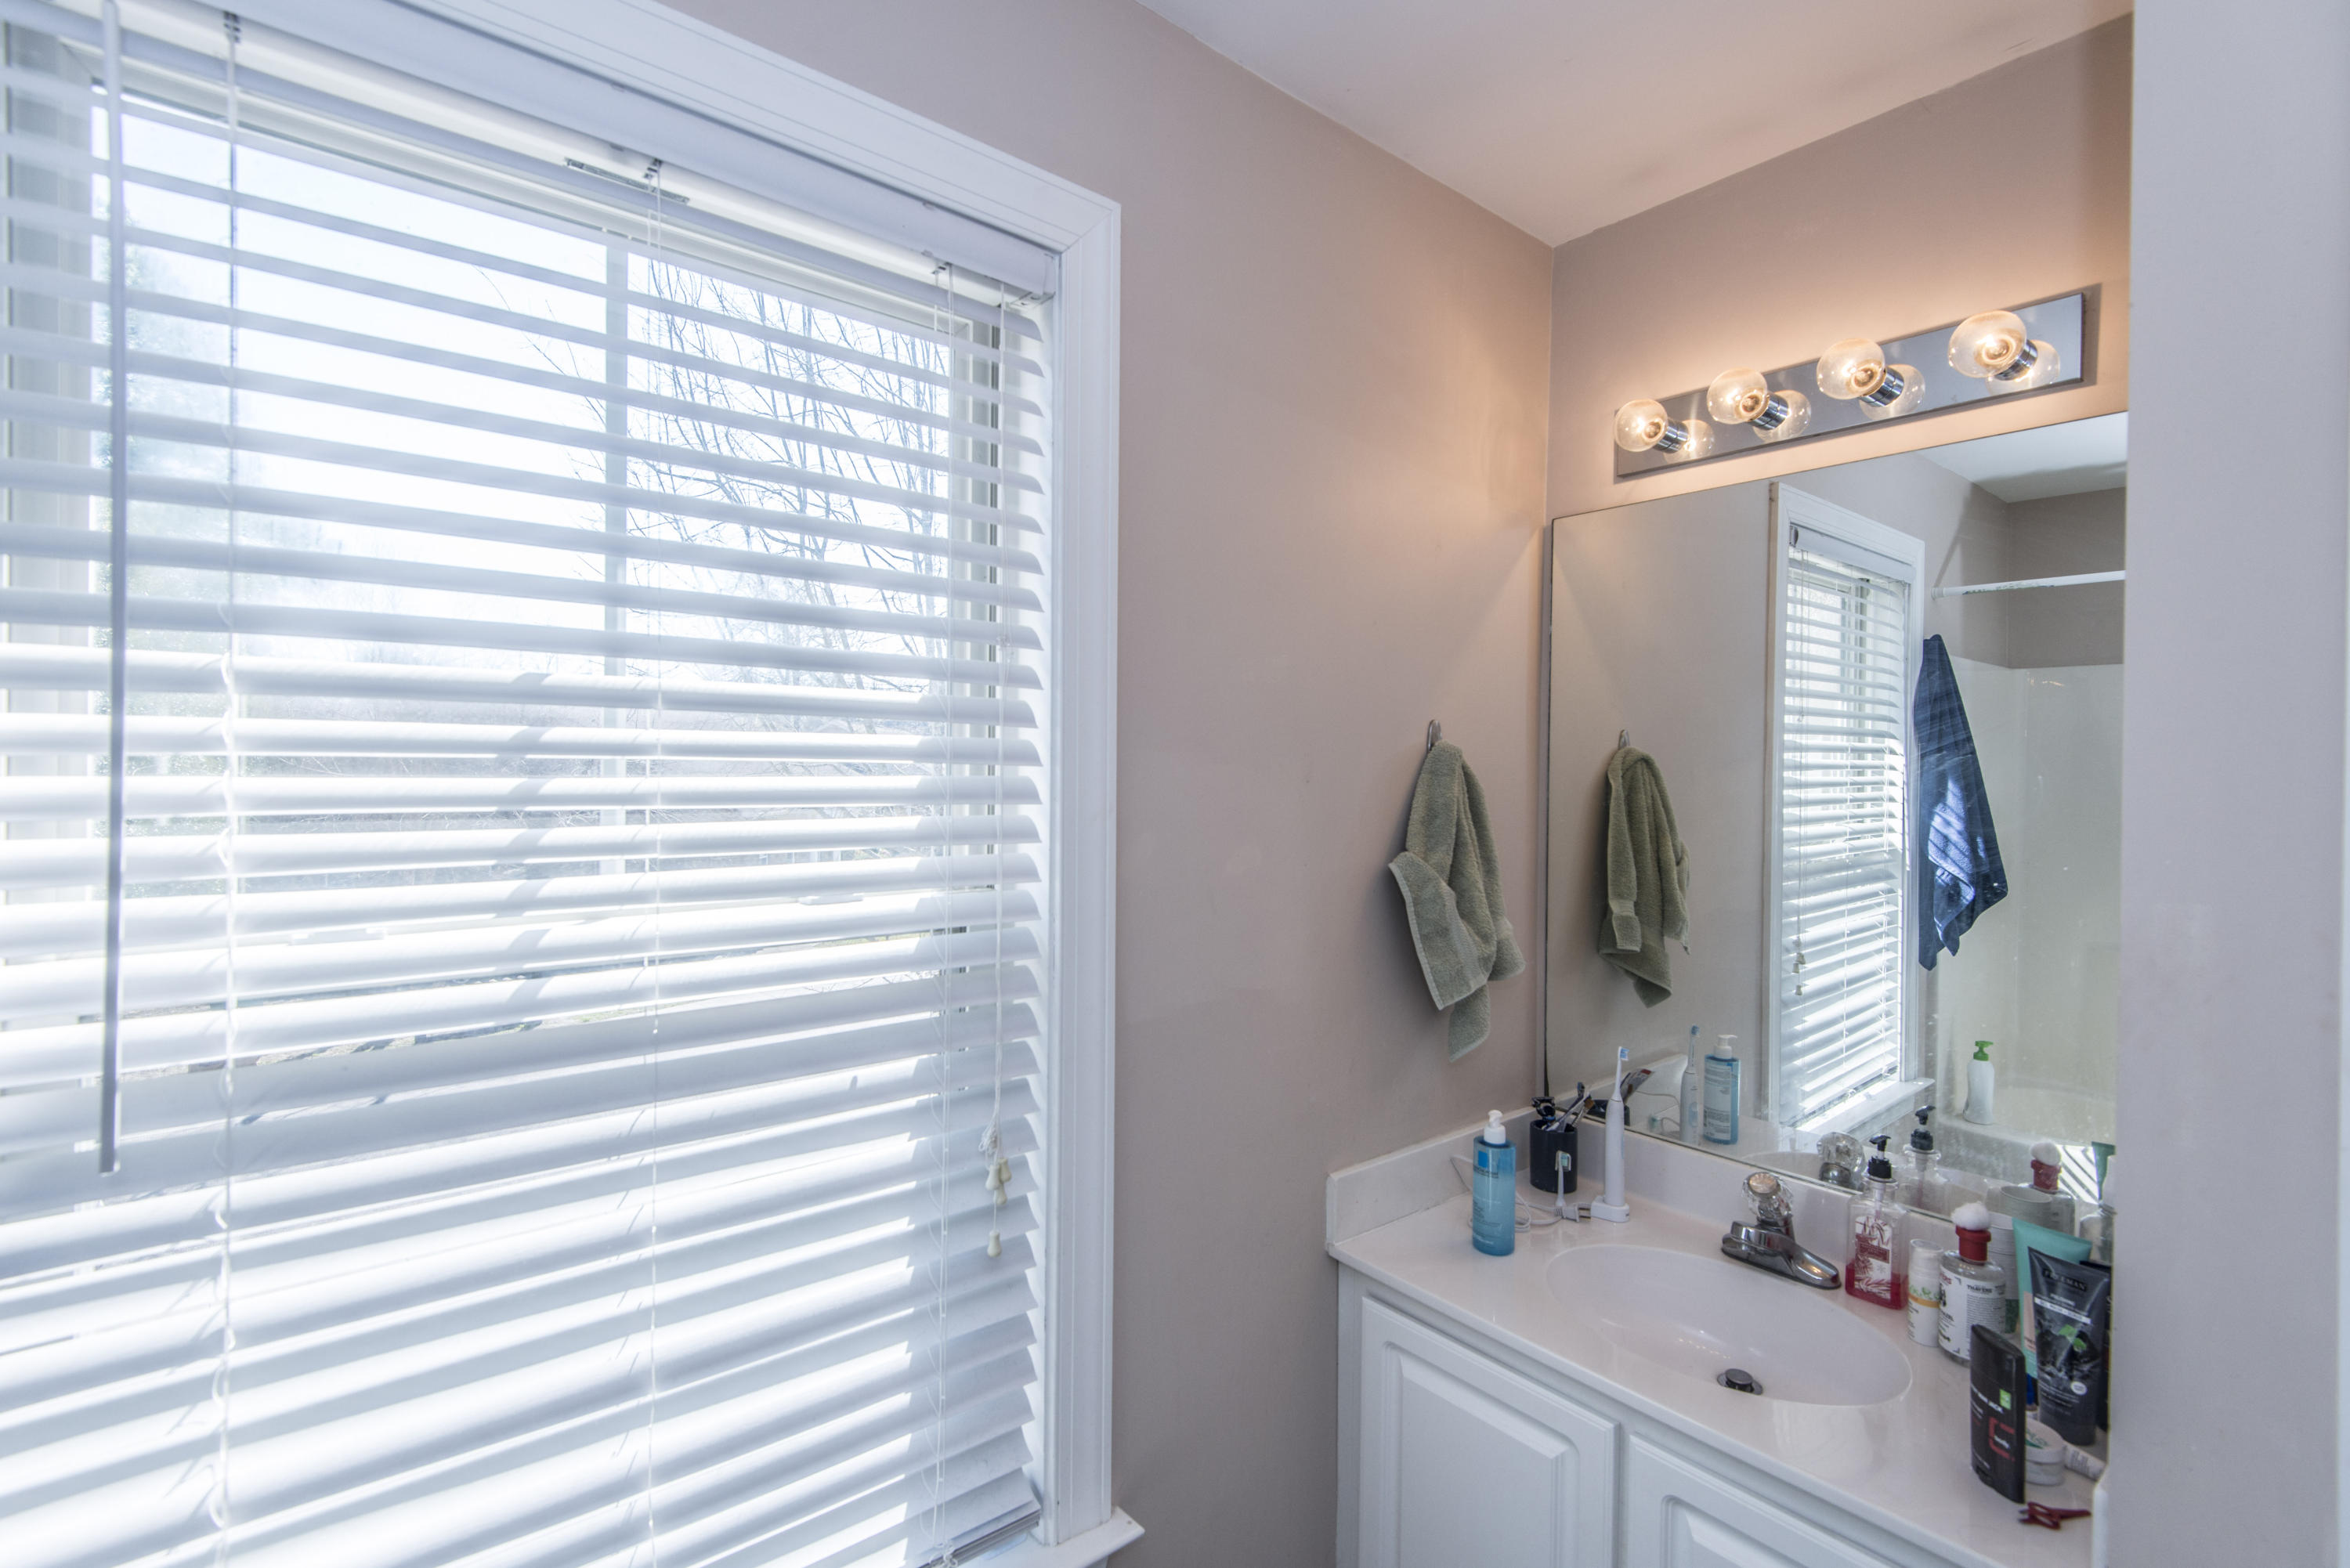 The Reserve at Wando East Homes For Sale - 1675 Lauda, Mount Pleasant, SC - 14